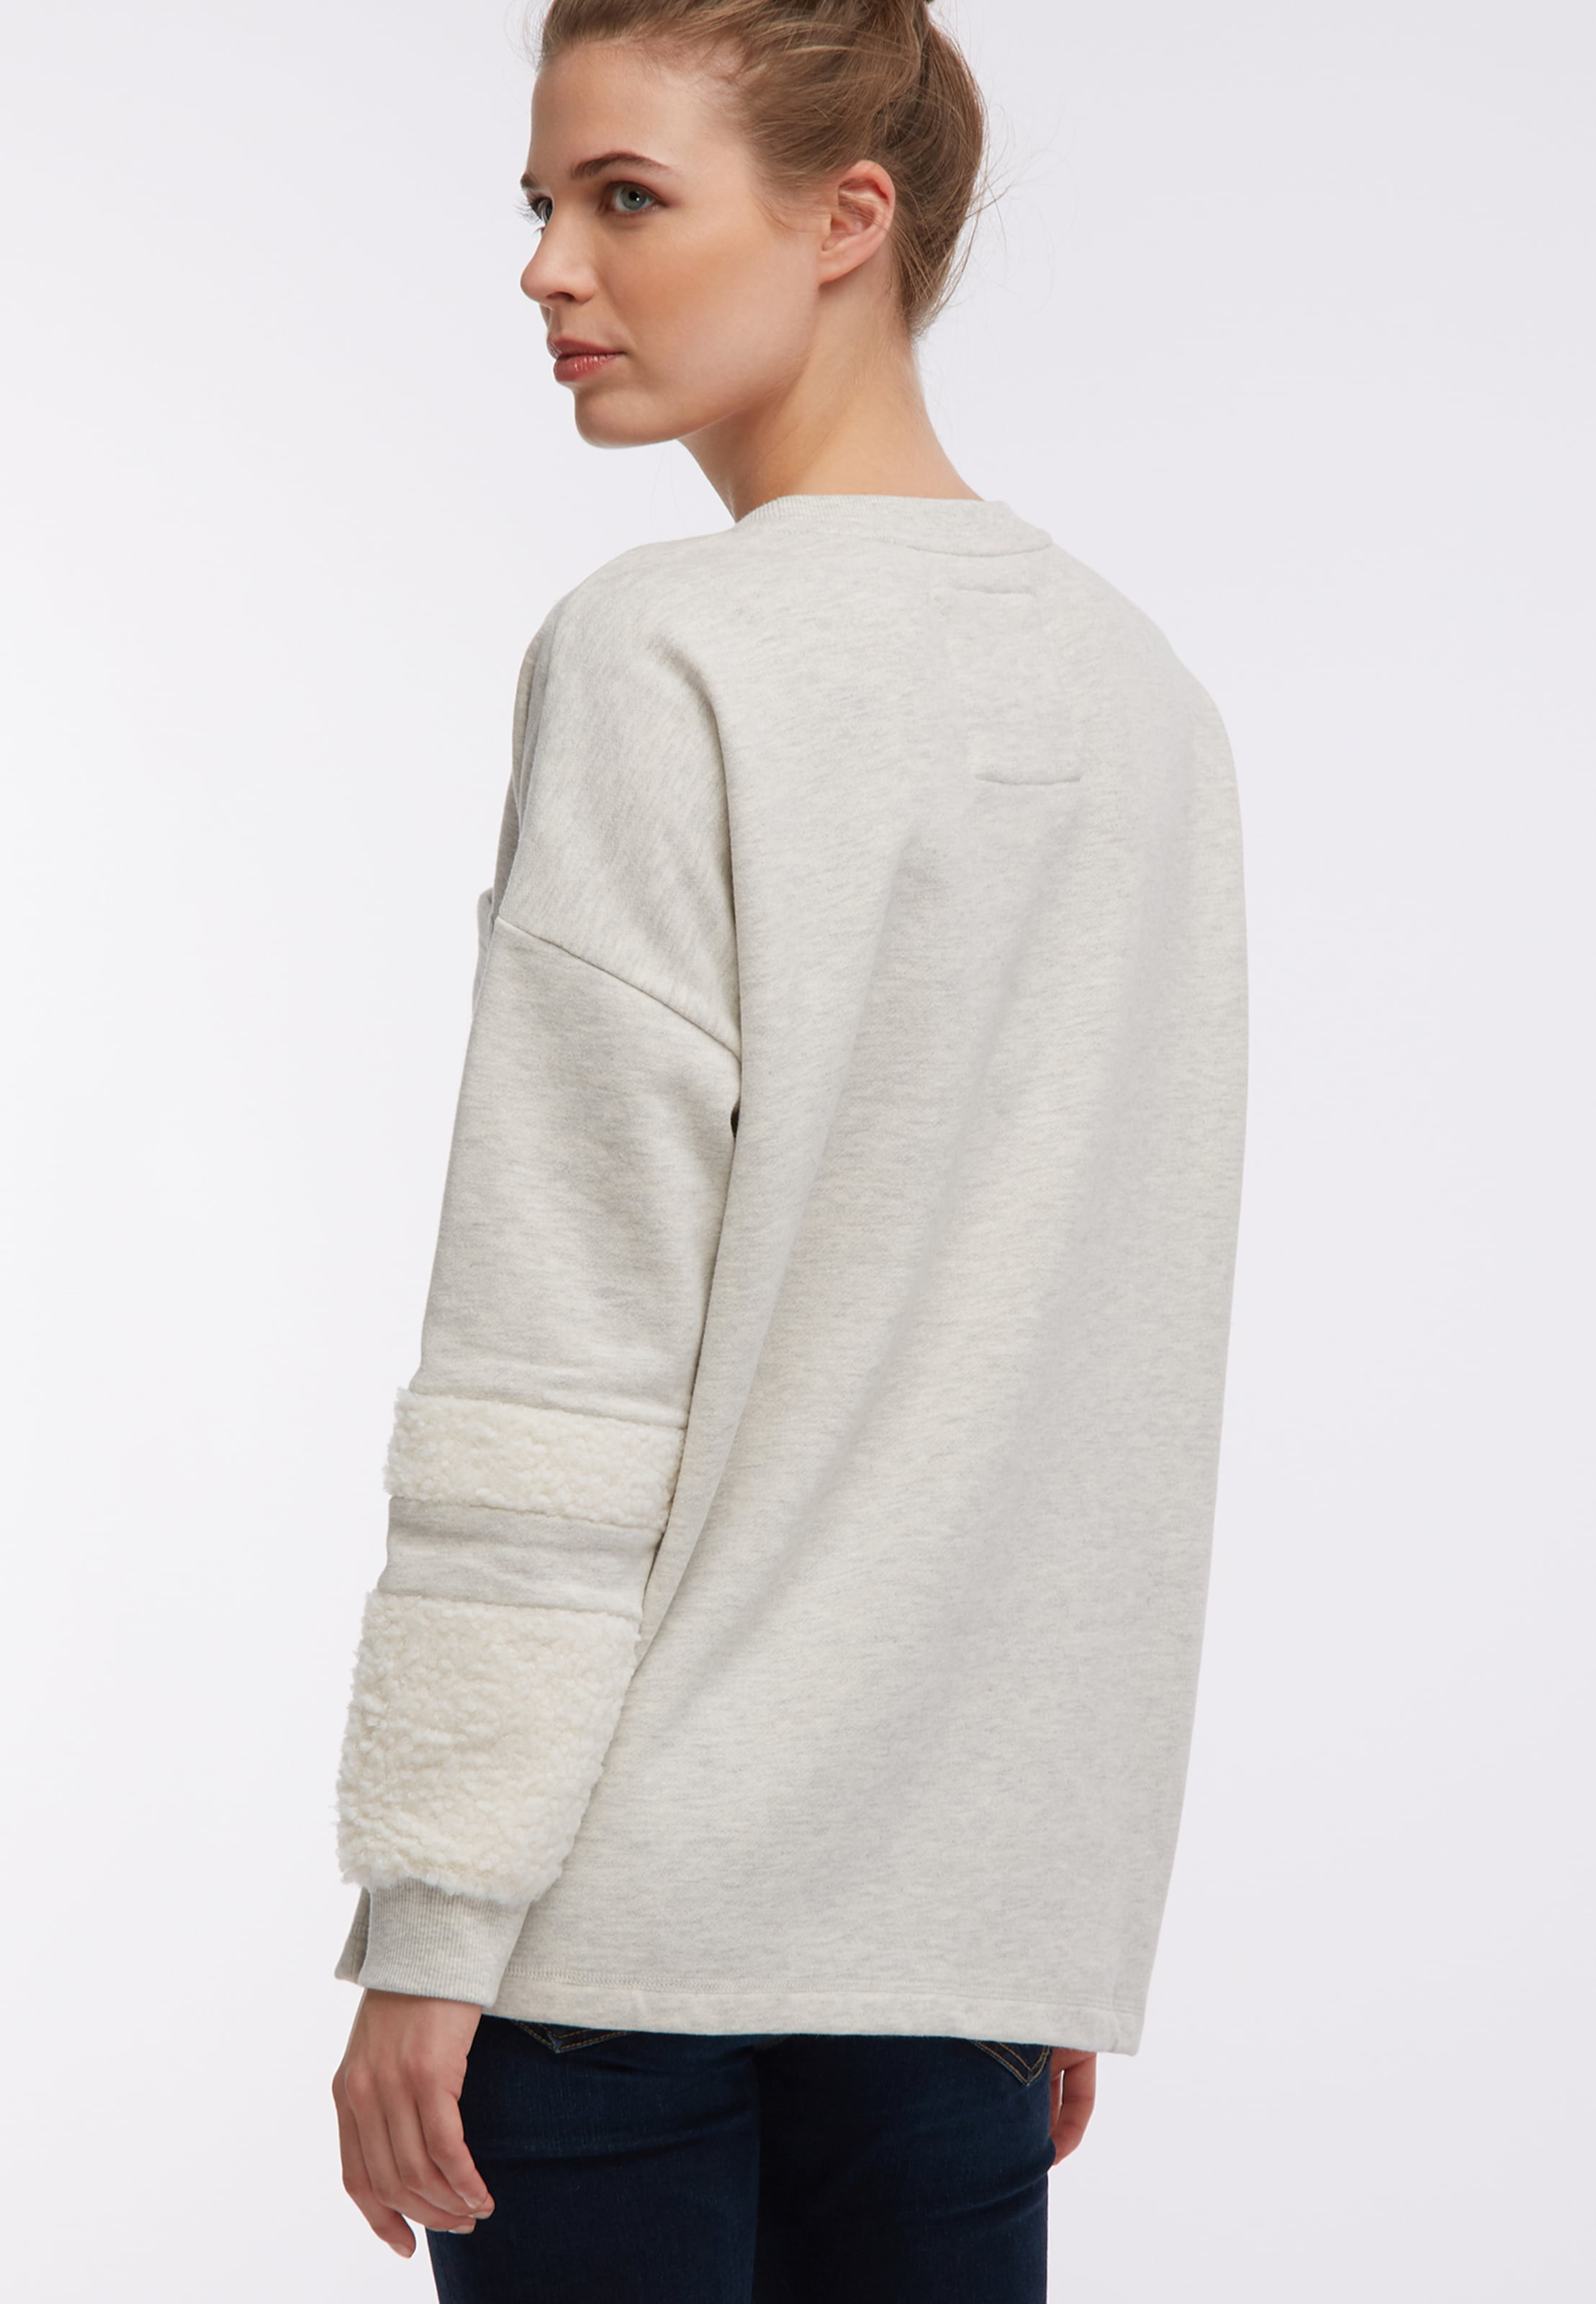 Dreimaster Blanc Sweat Dreimaster En shirt Sweat 8vnN0mw